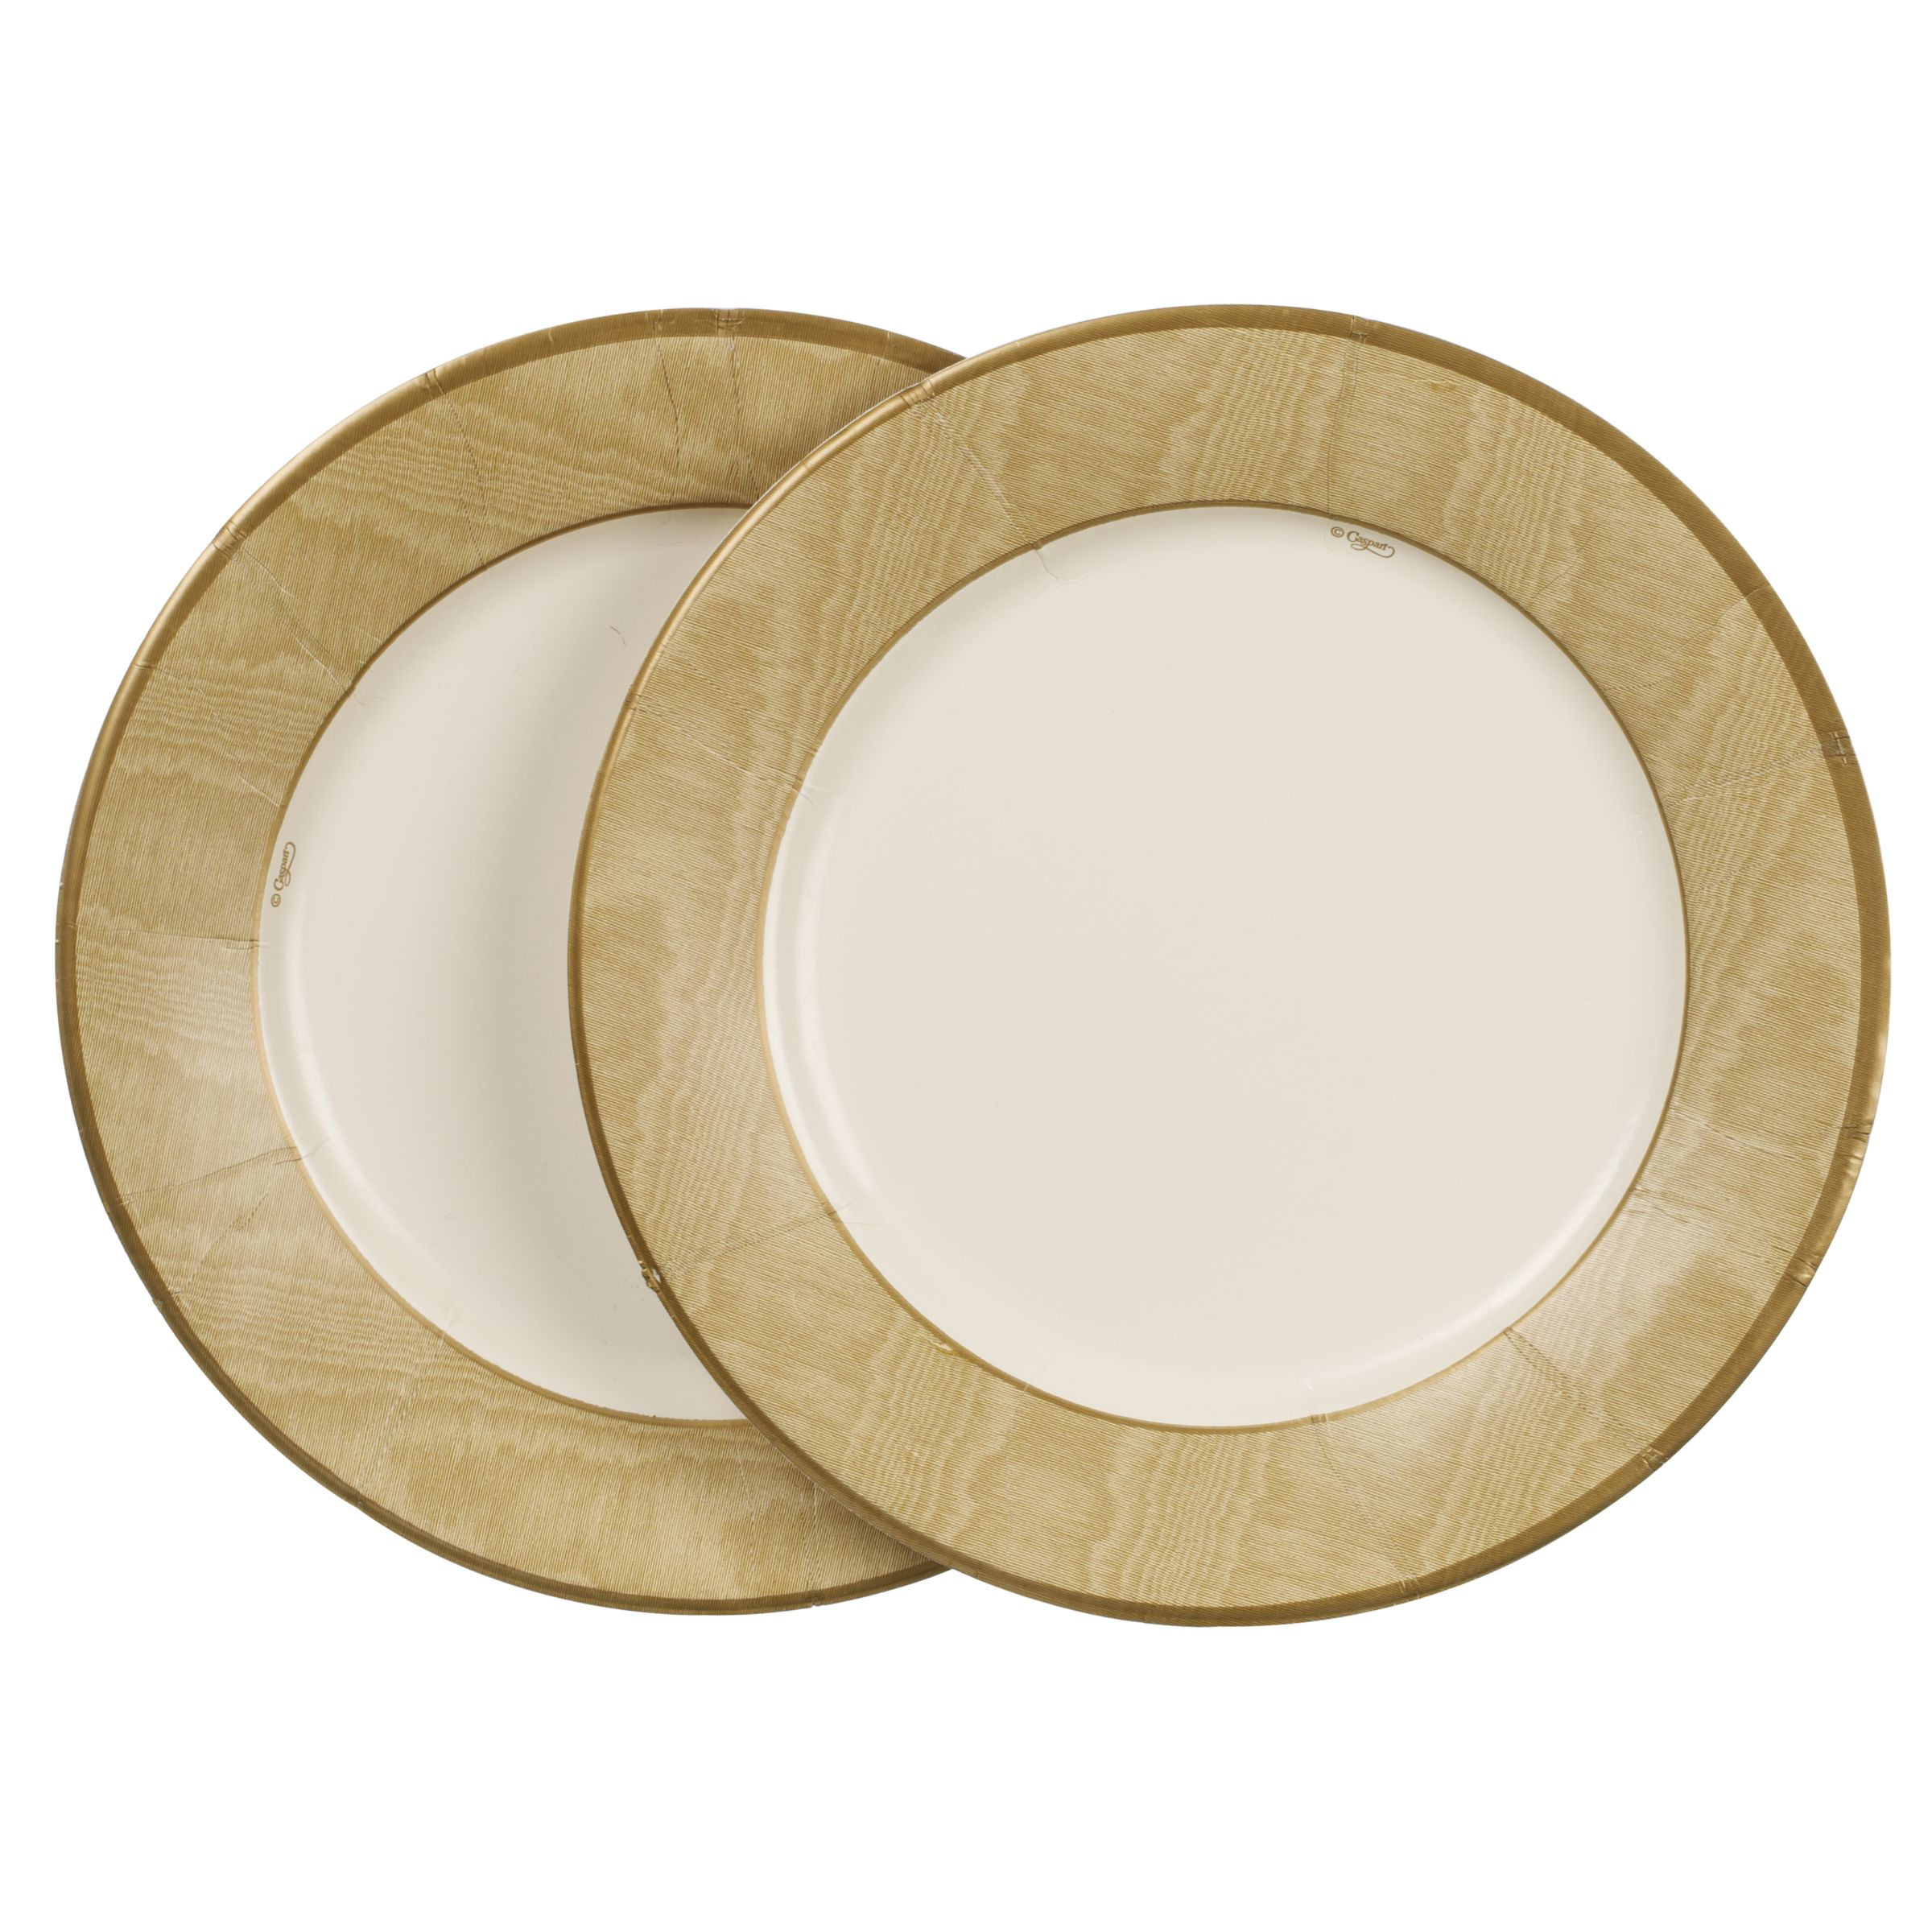 Caspari Paper Plates, Pack of 8, Gold Moire